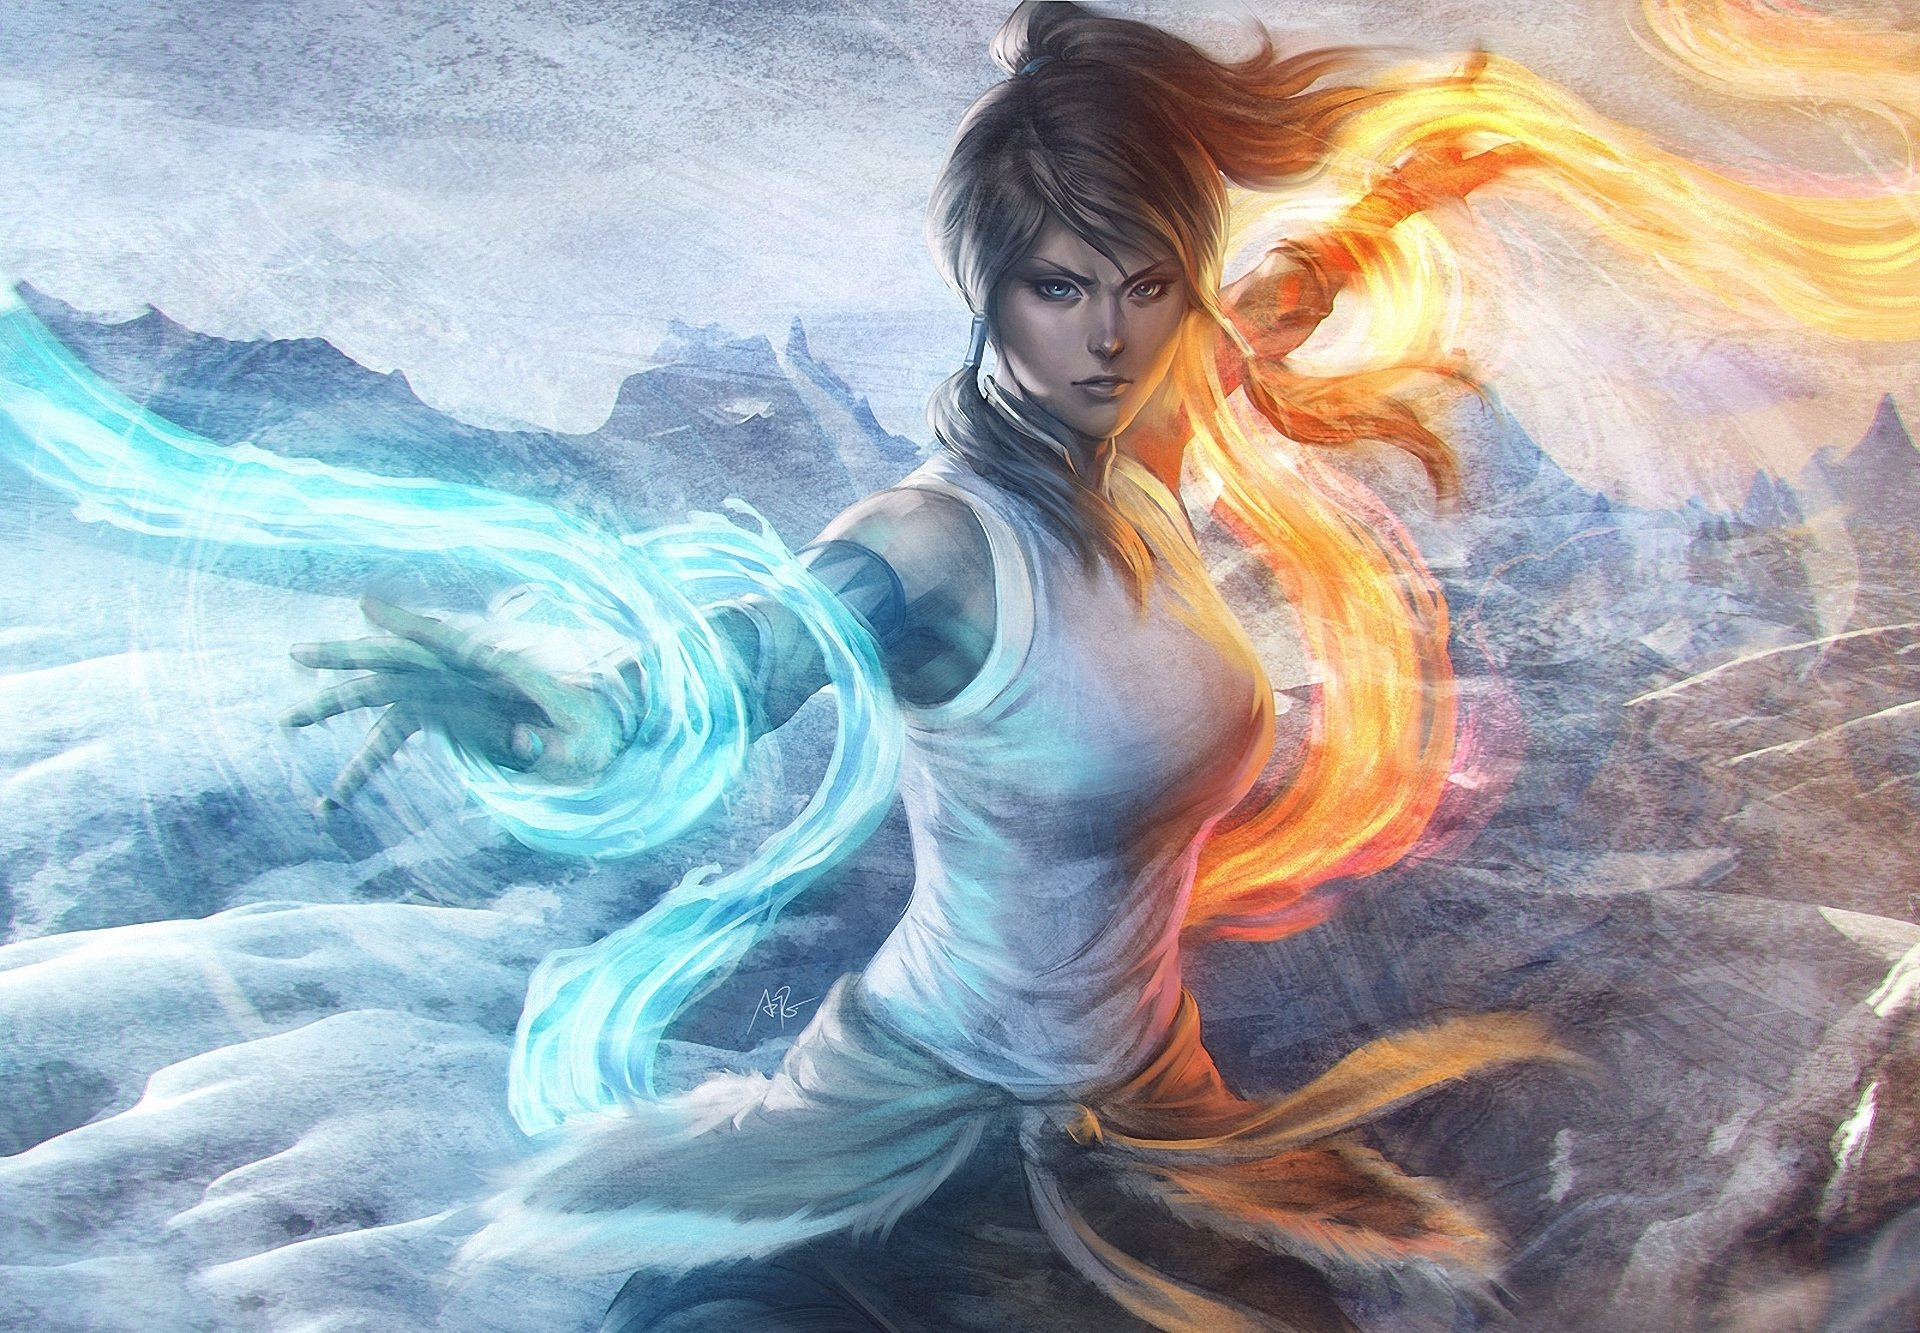 Download hd 1680x1050 Avatar: The Legend Of Korra computer wallpaper ID:243427 for free